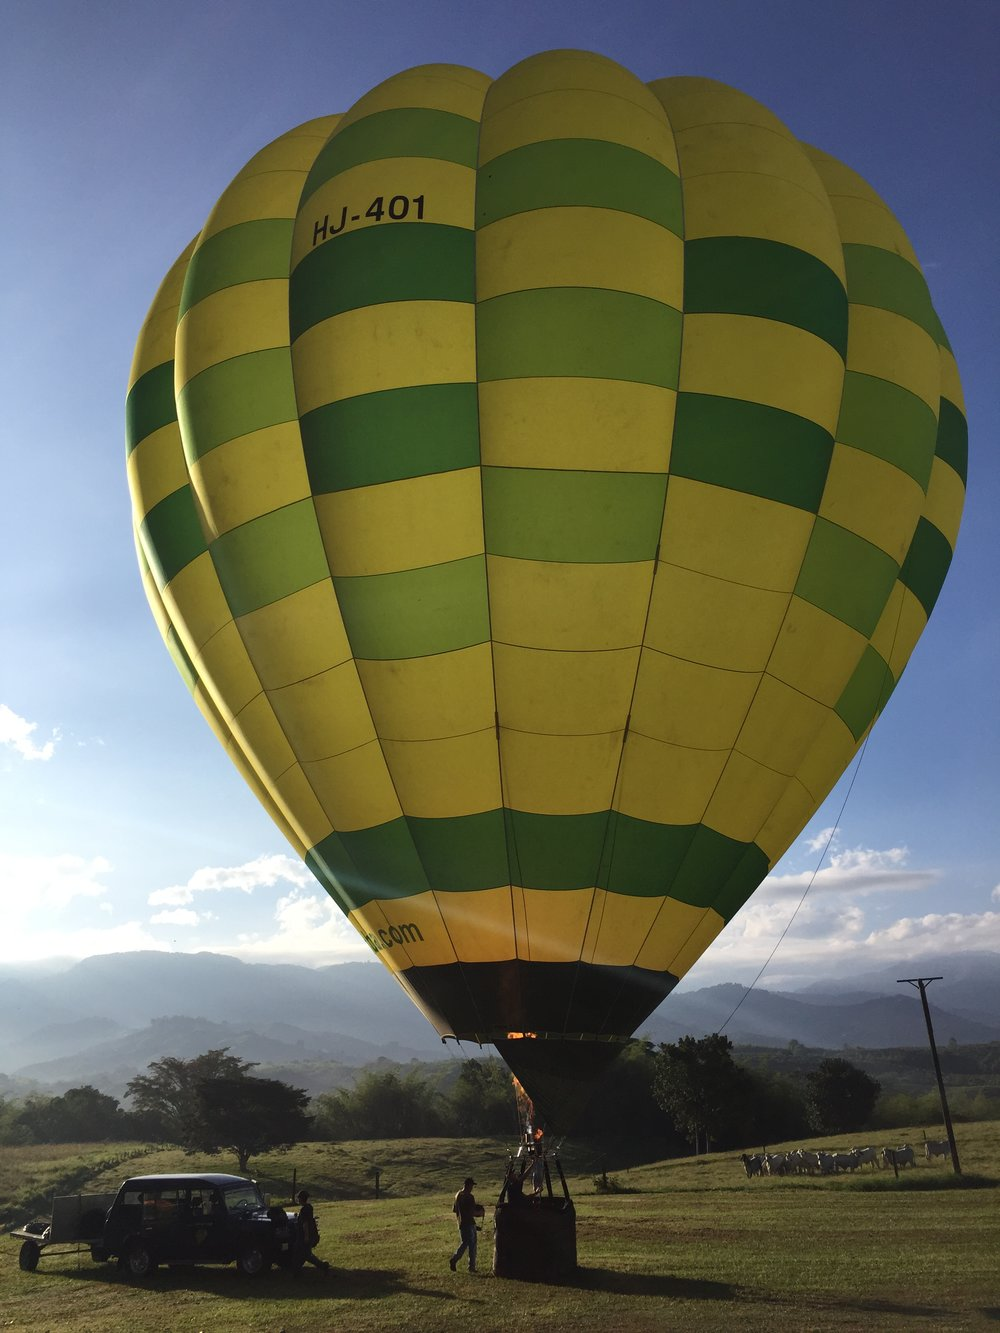 A hot air balloon ride offers guests a unique perspective of the Hacienda & surrounding countryside